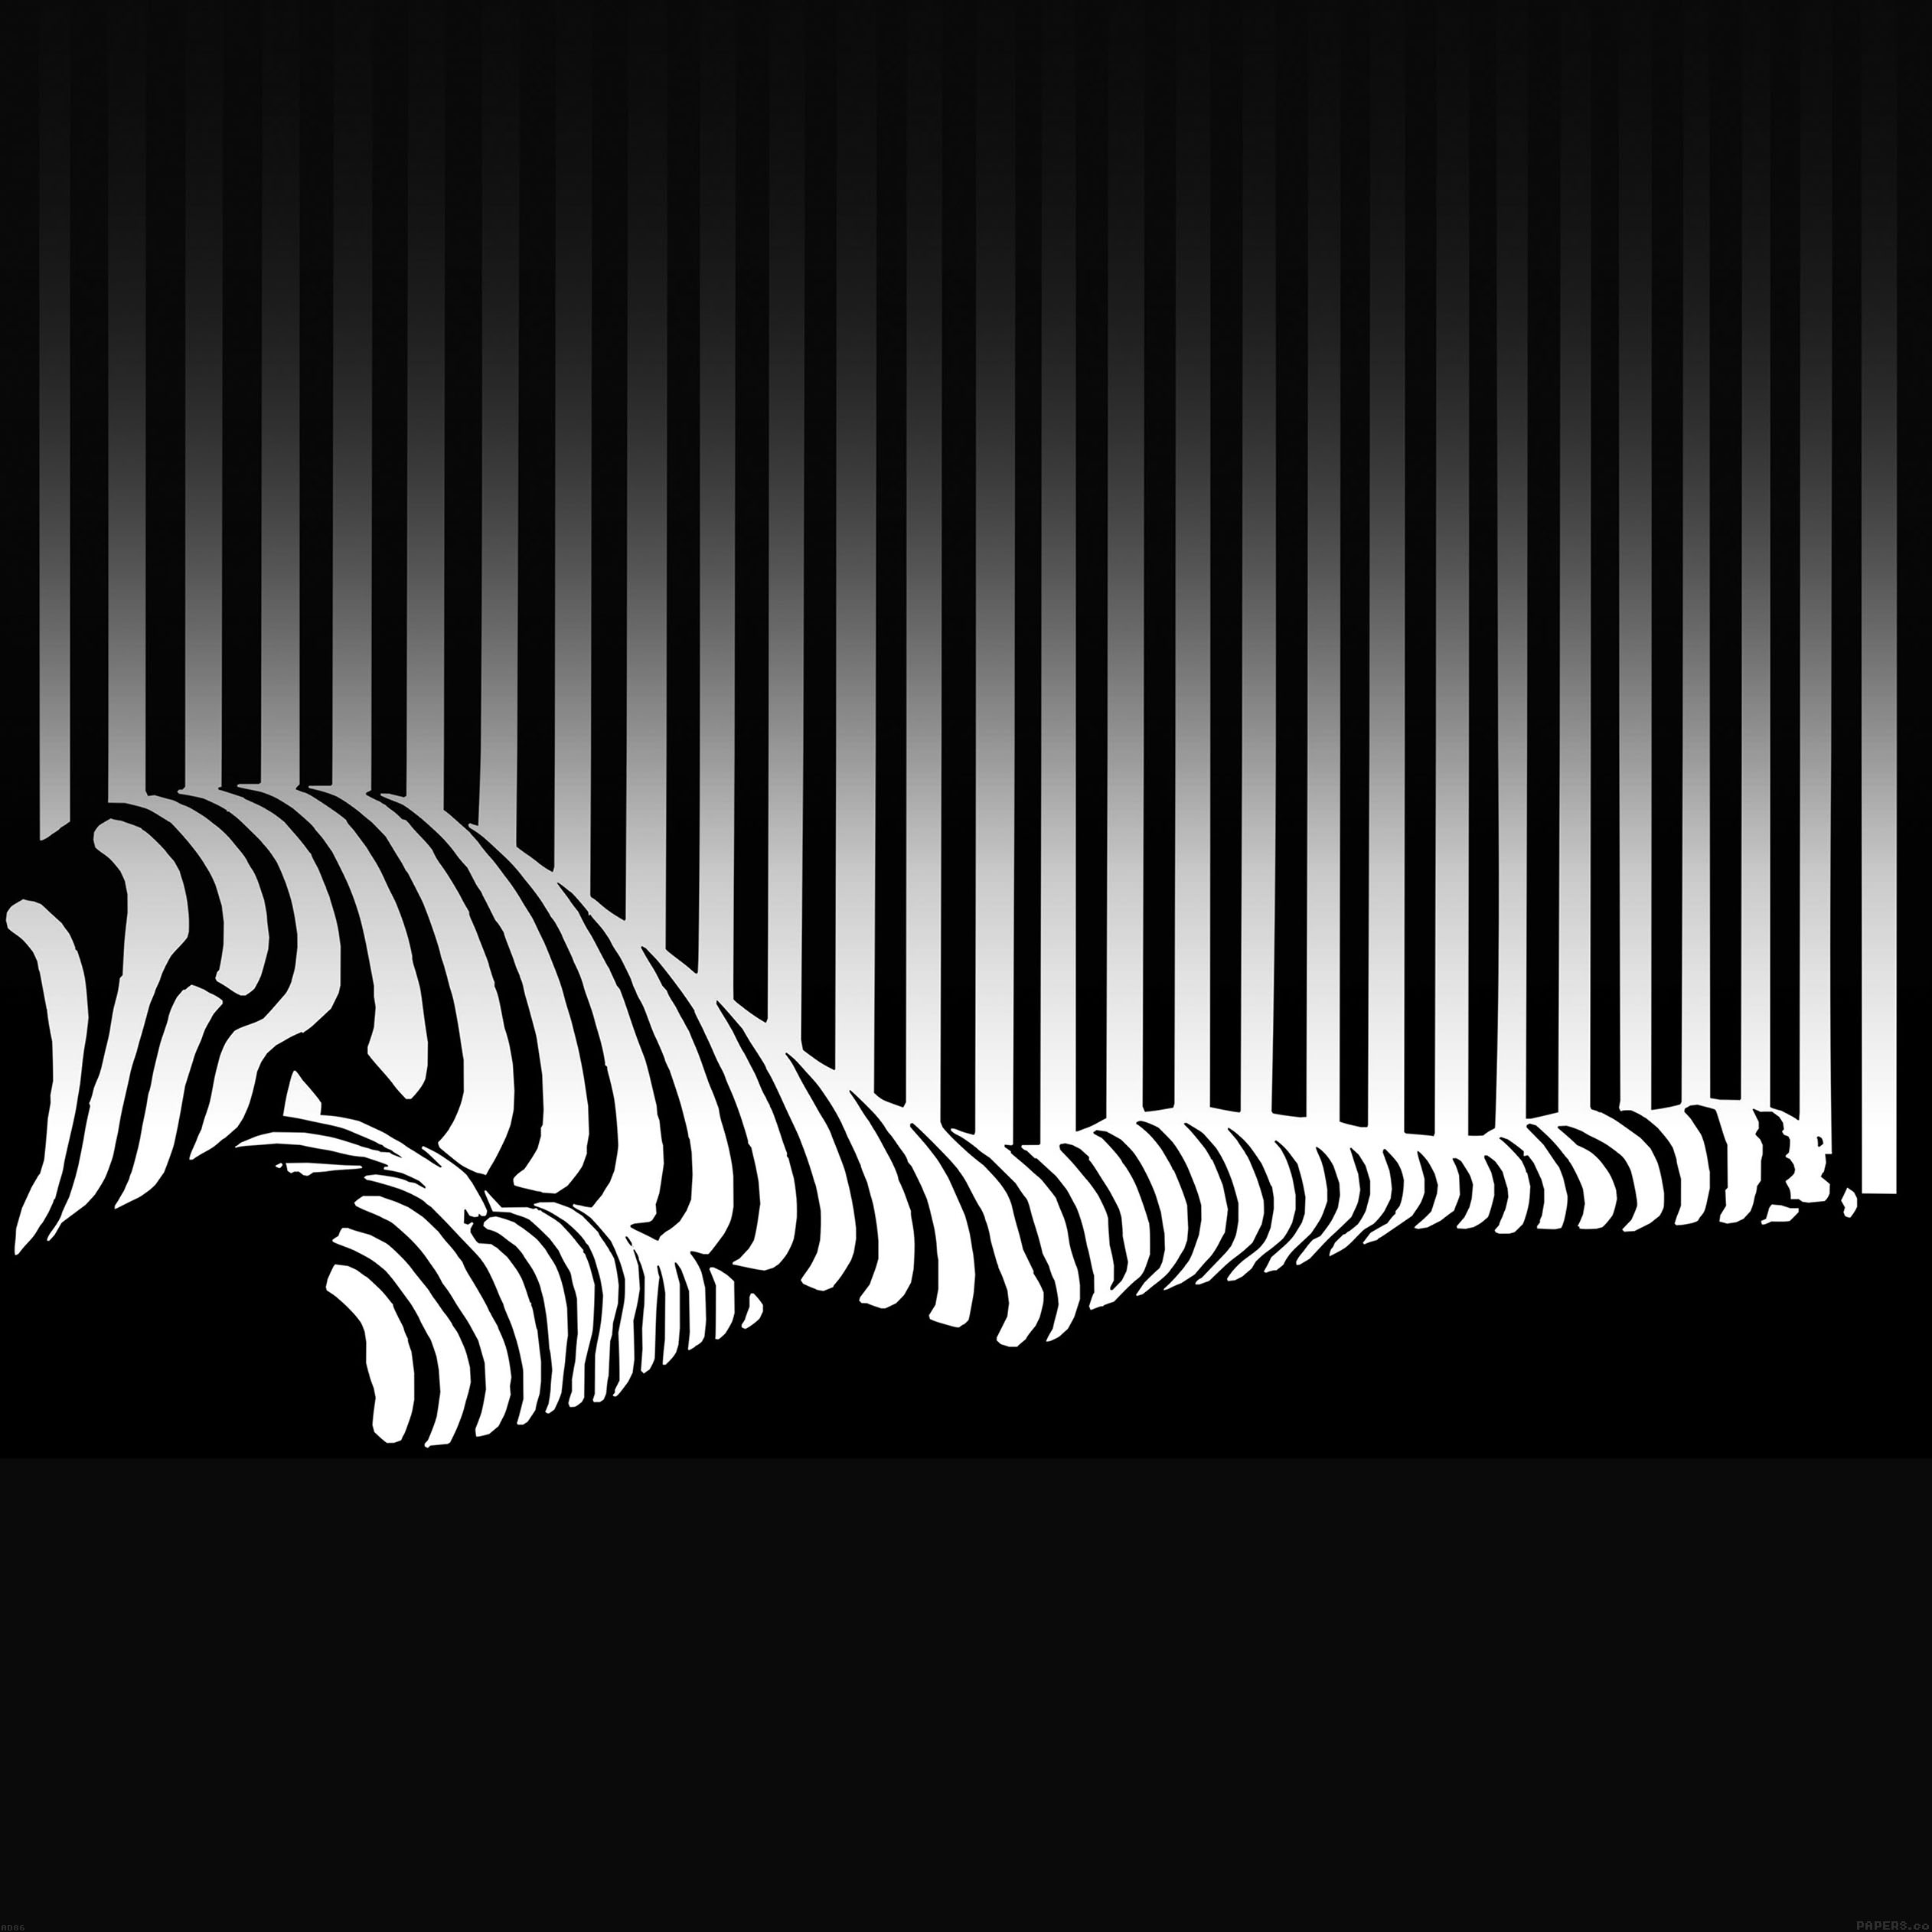 Freeios7 ad86 stripe leg illust minimal art parallax for Minimal art kunstwerke